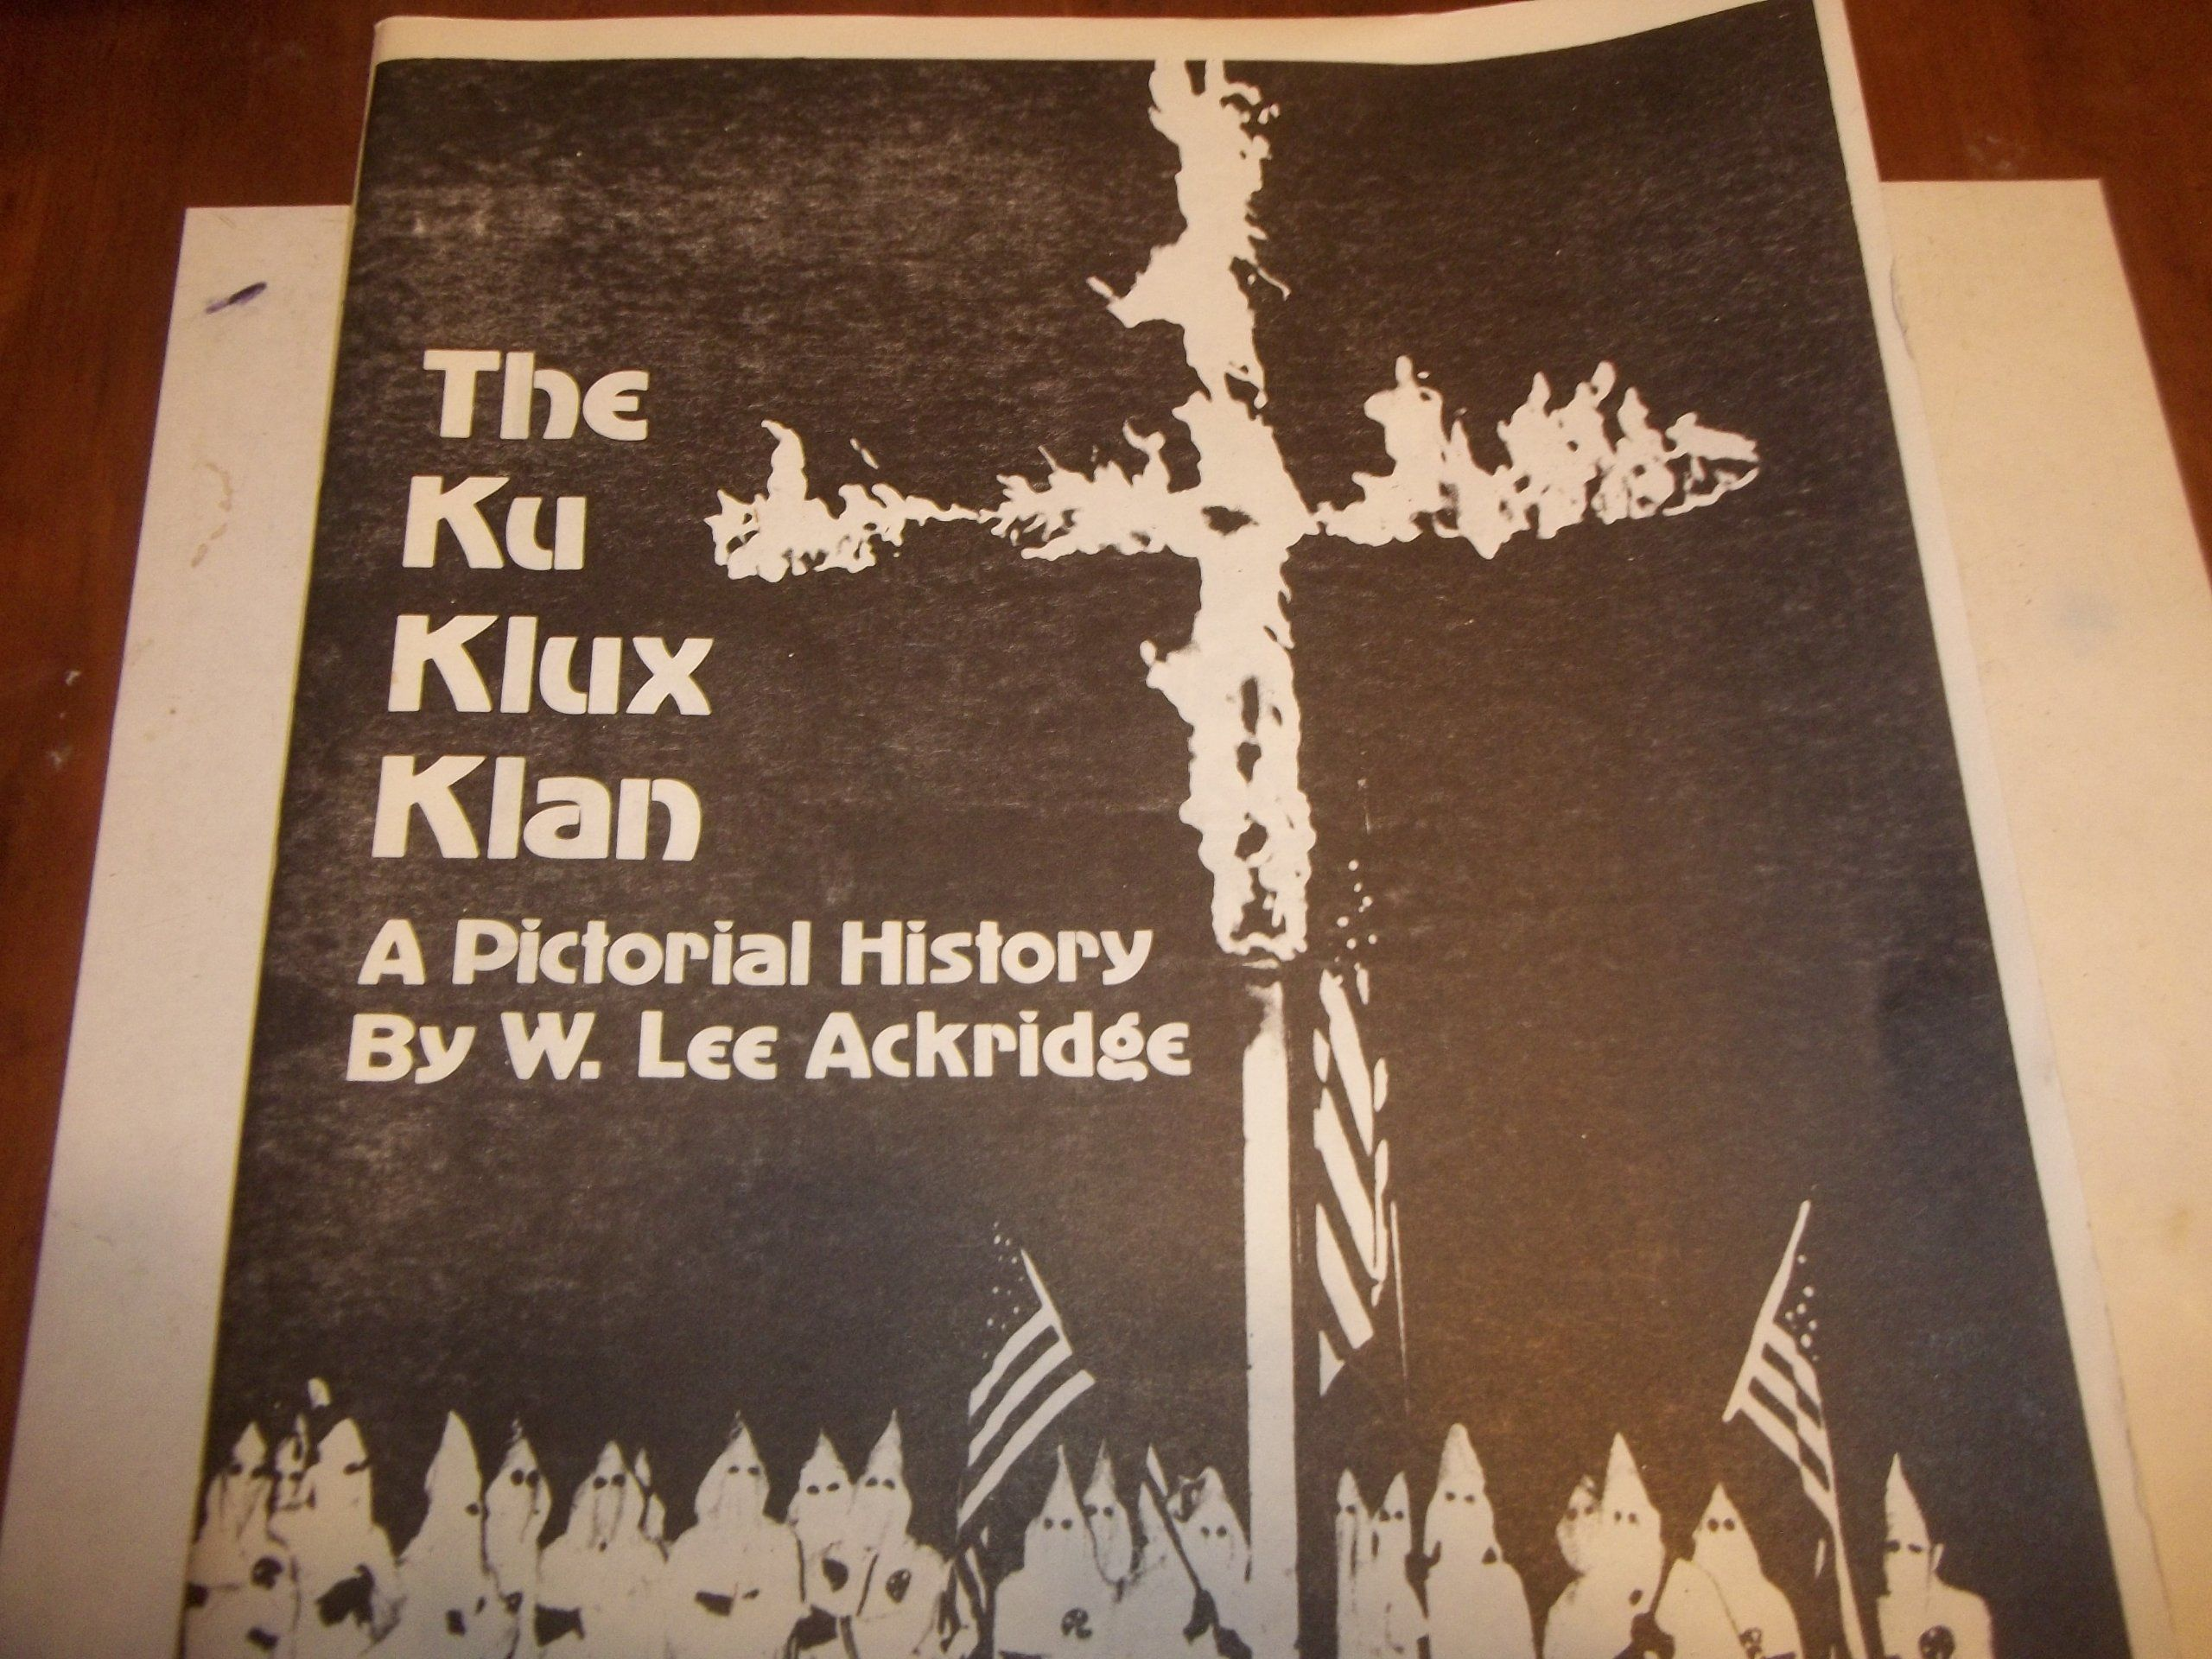 a review of the history of the ku klux klan A ku klux klan march in ashland, oregon (date unknown estimated to be from the 1920s) oregon historical society portland, ore— victor pierce has worked on the assembly line of a daimler trucks.